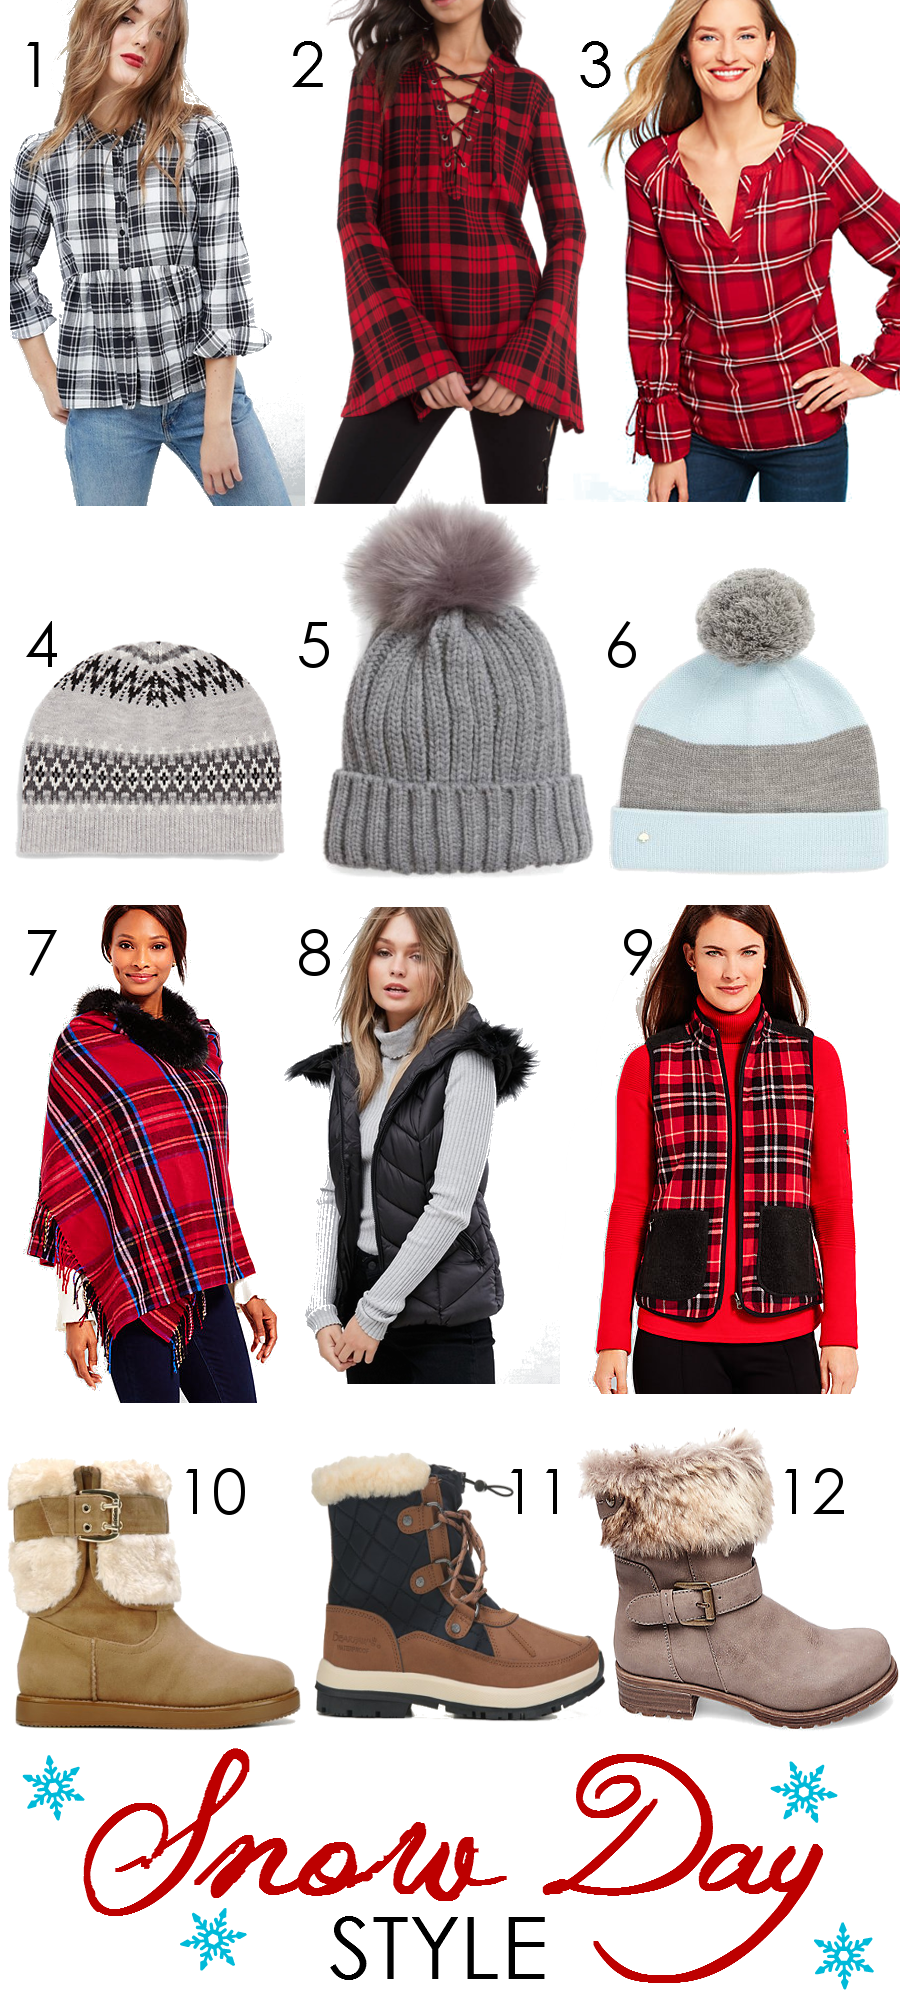 Snow Day Style Picks I Winter Plaid, Pompom Hats, Vests and Snow Boots